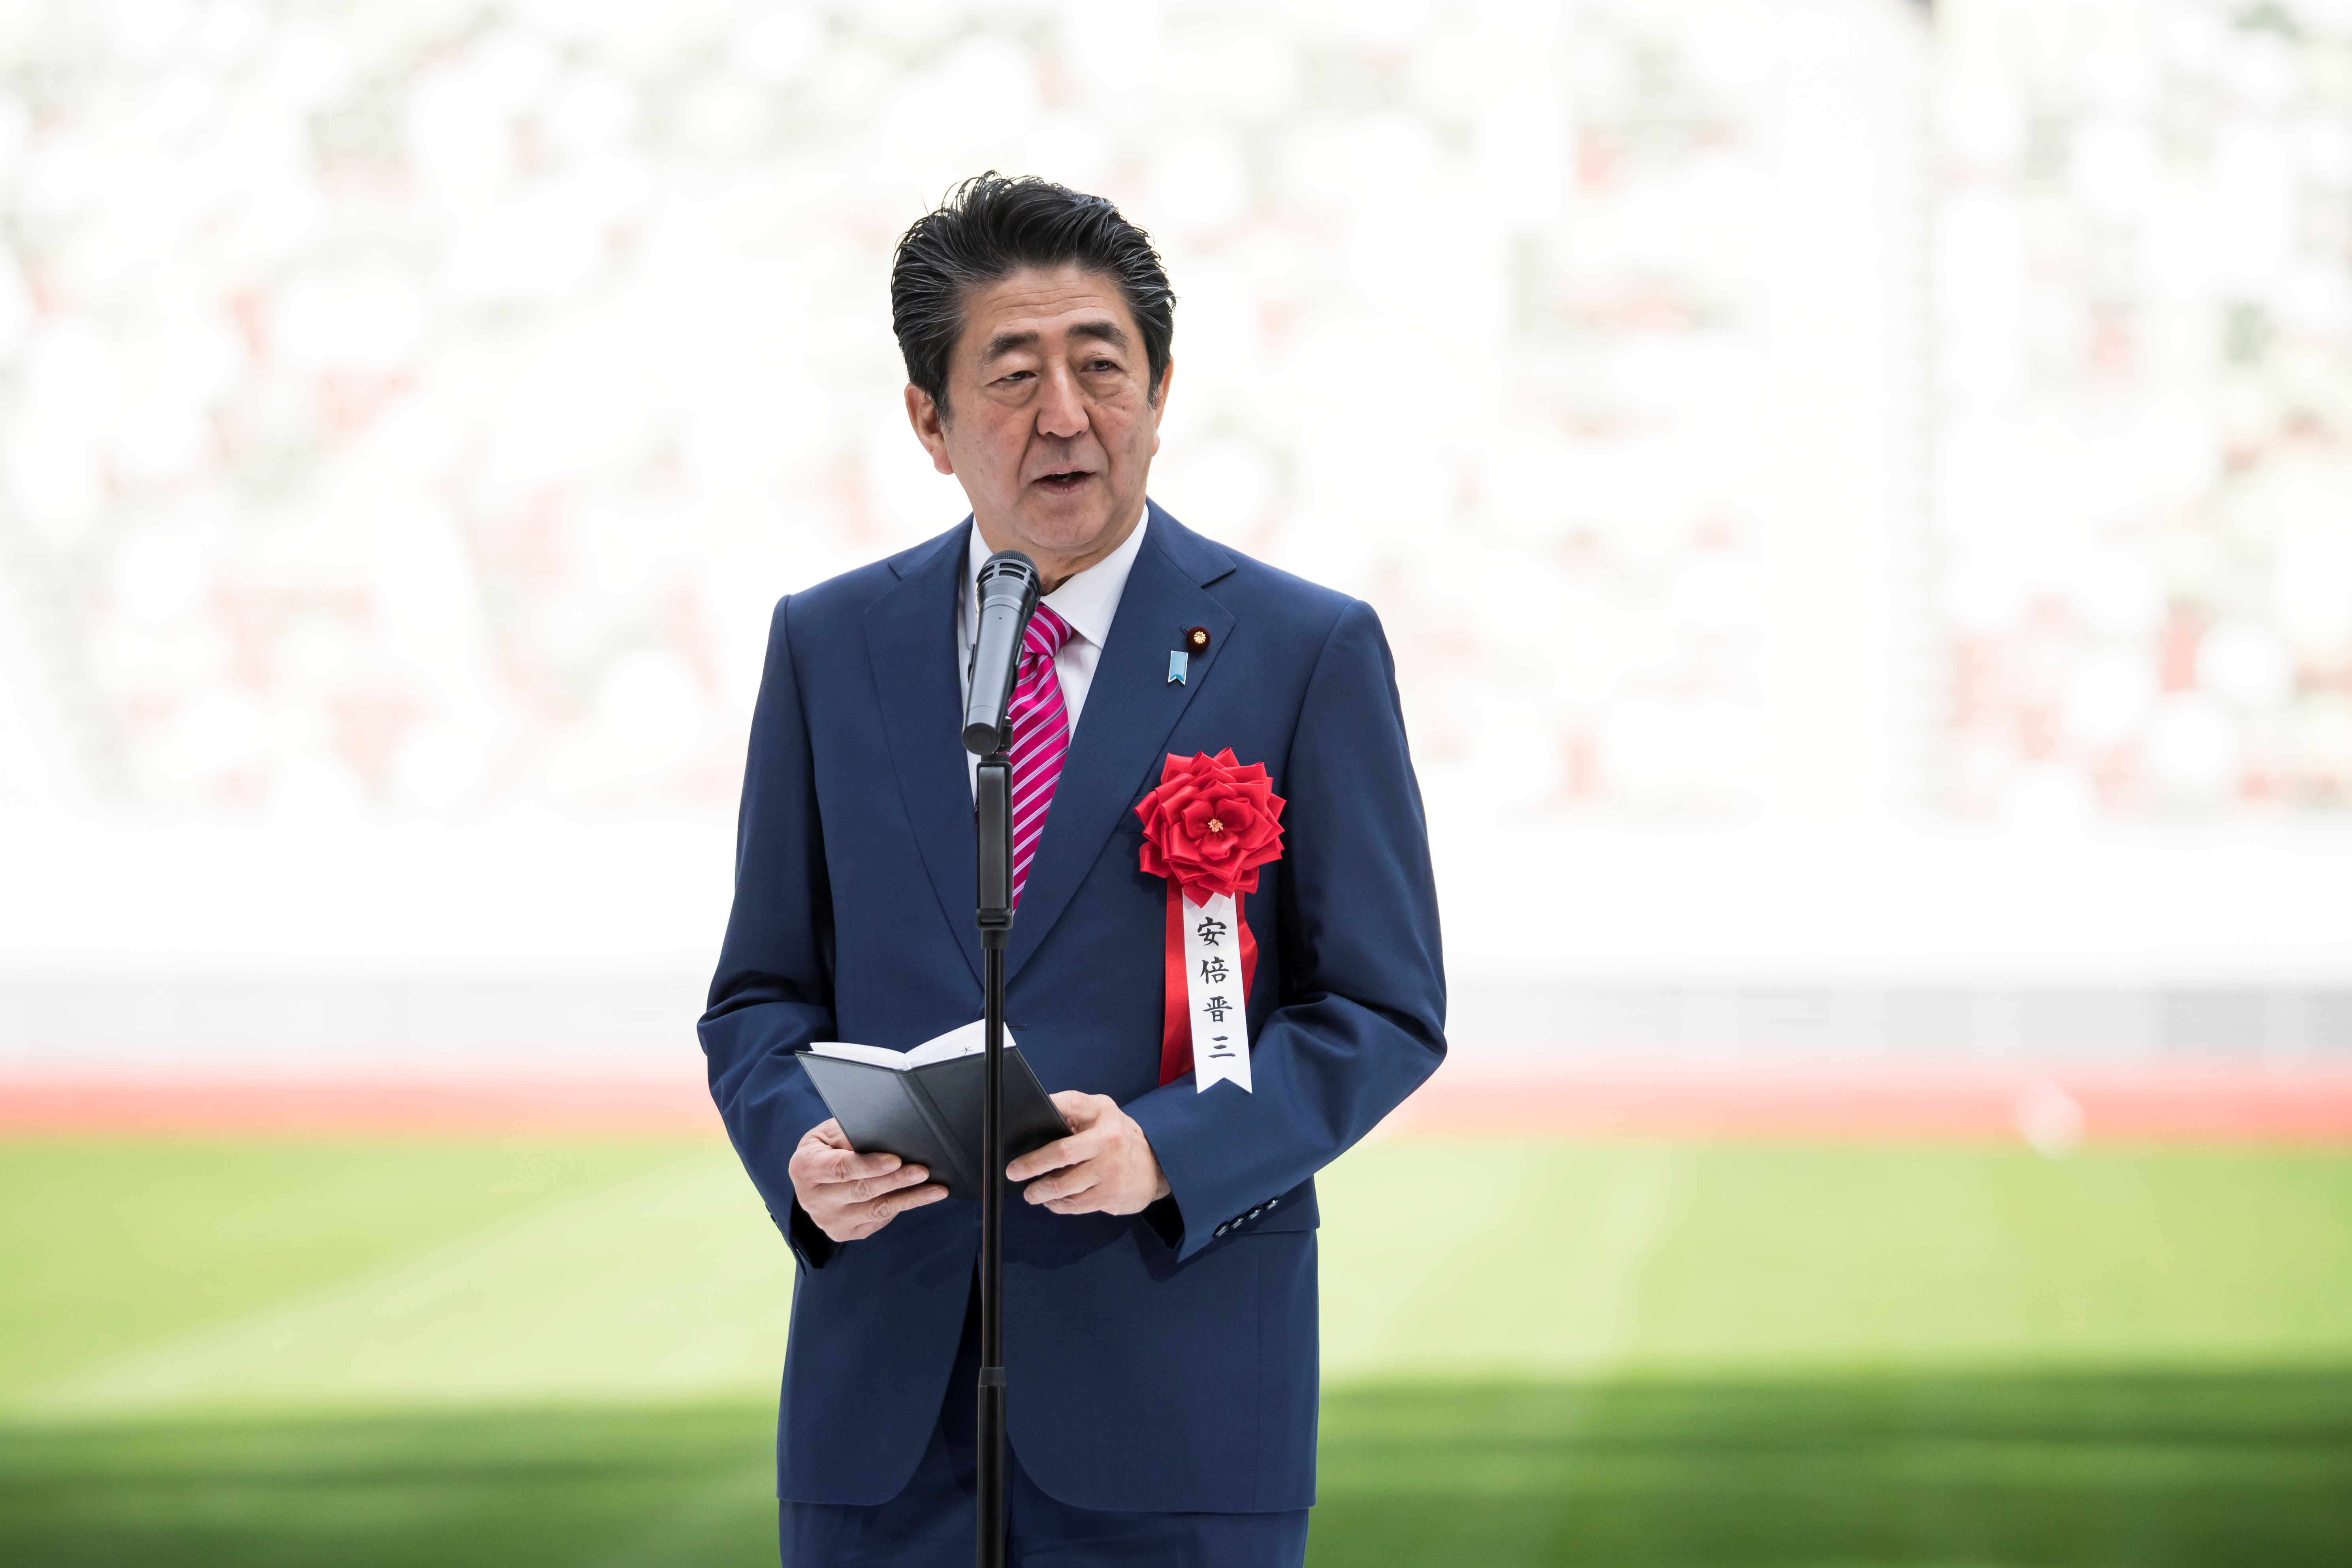 Japan's Prime Minister Shinzo Abe attends the construction completion ceremony of the New National Stadium on December 15, 2019 in Tokyo, Japan.   Tomohiro Ohsumi/Pool via REUTERS